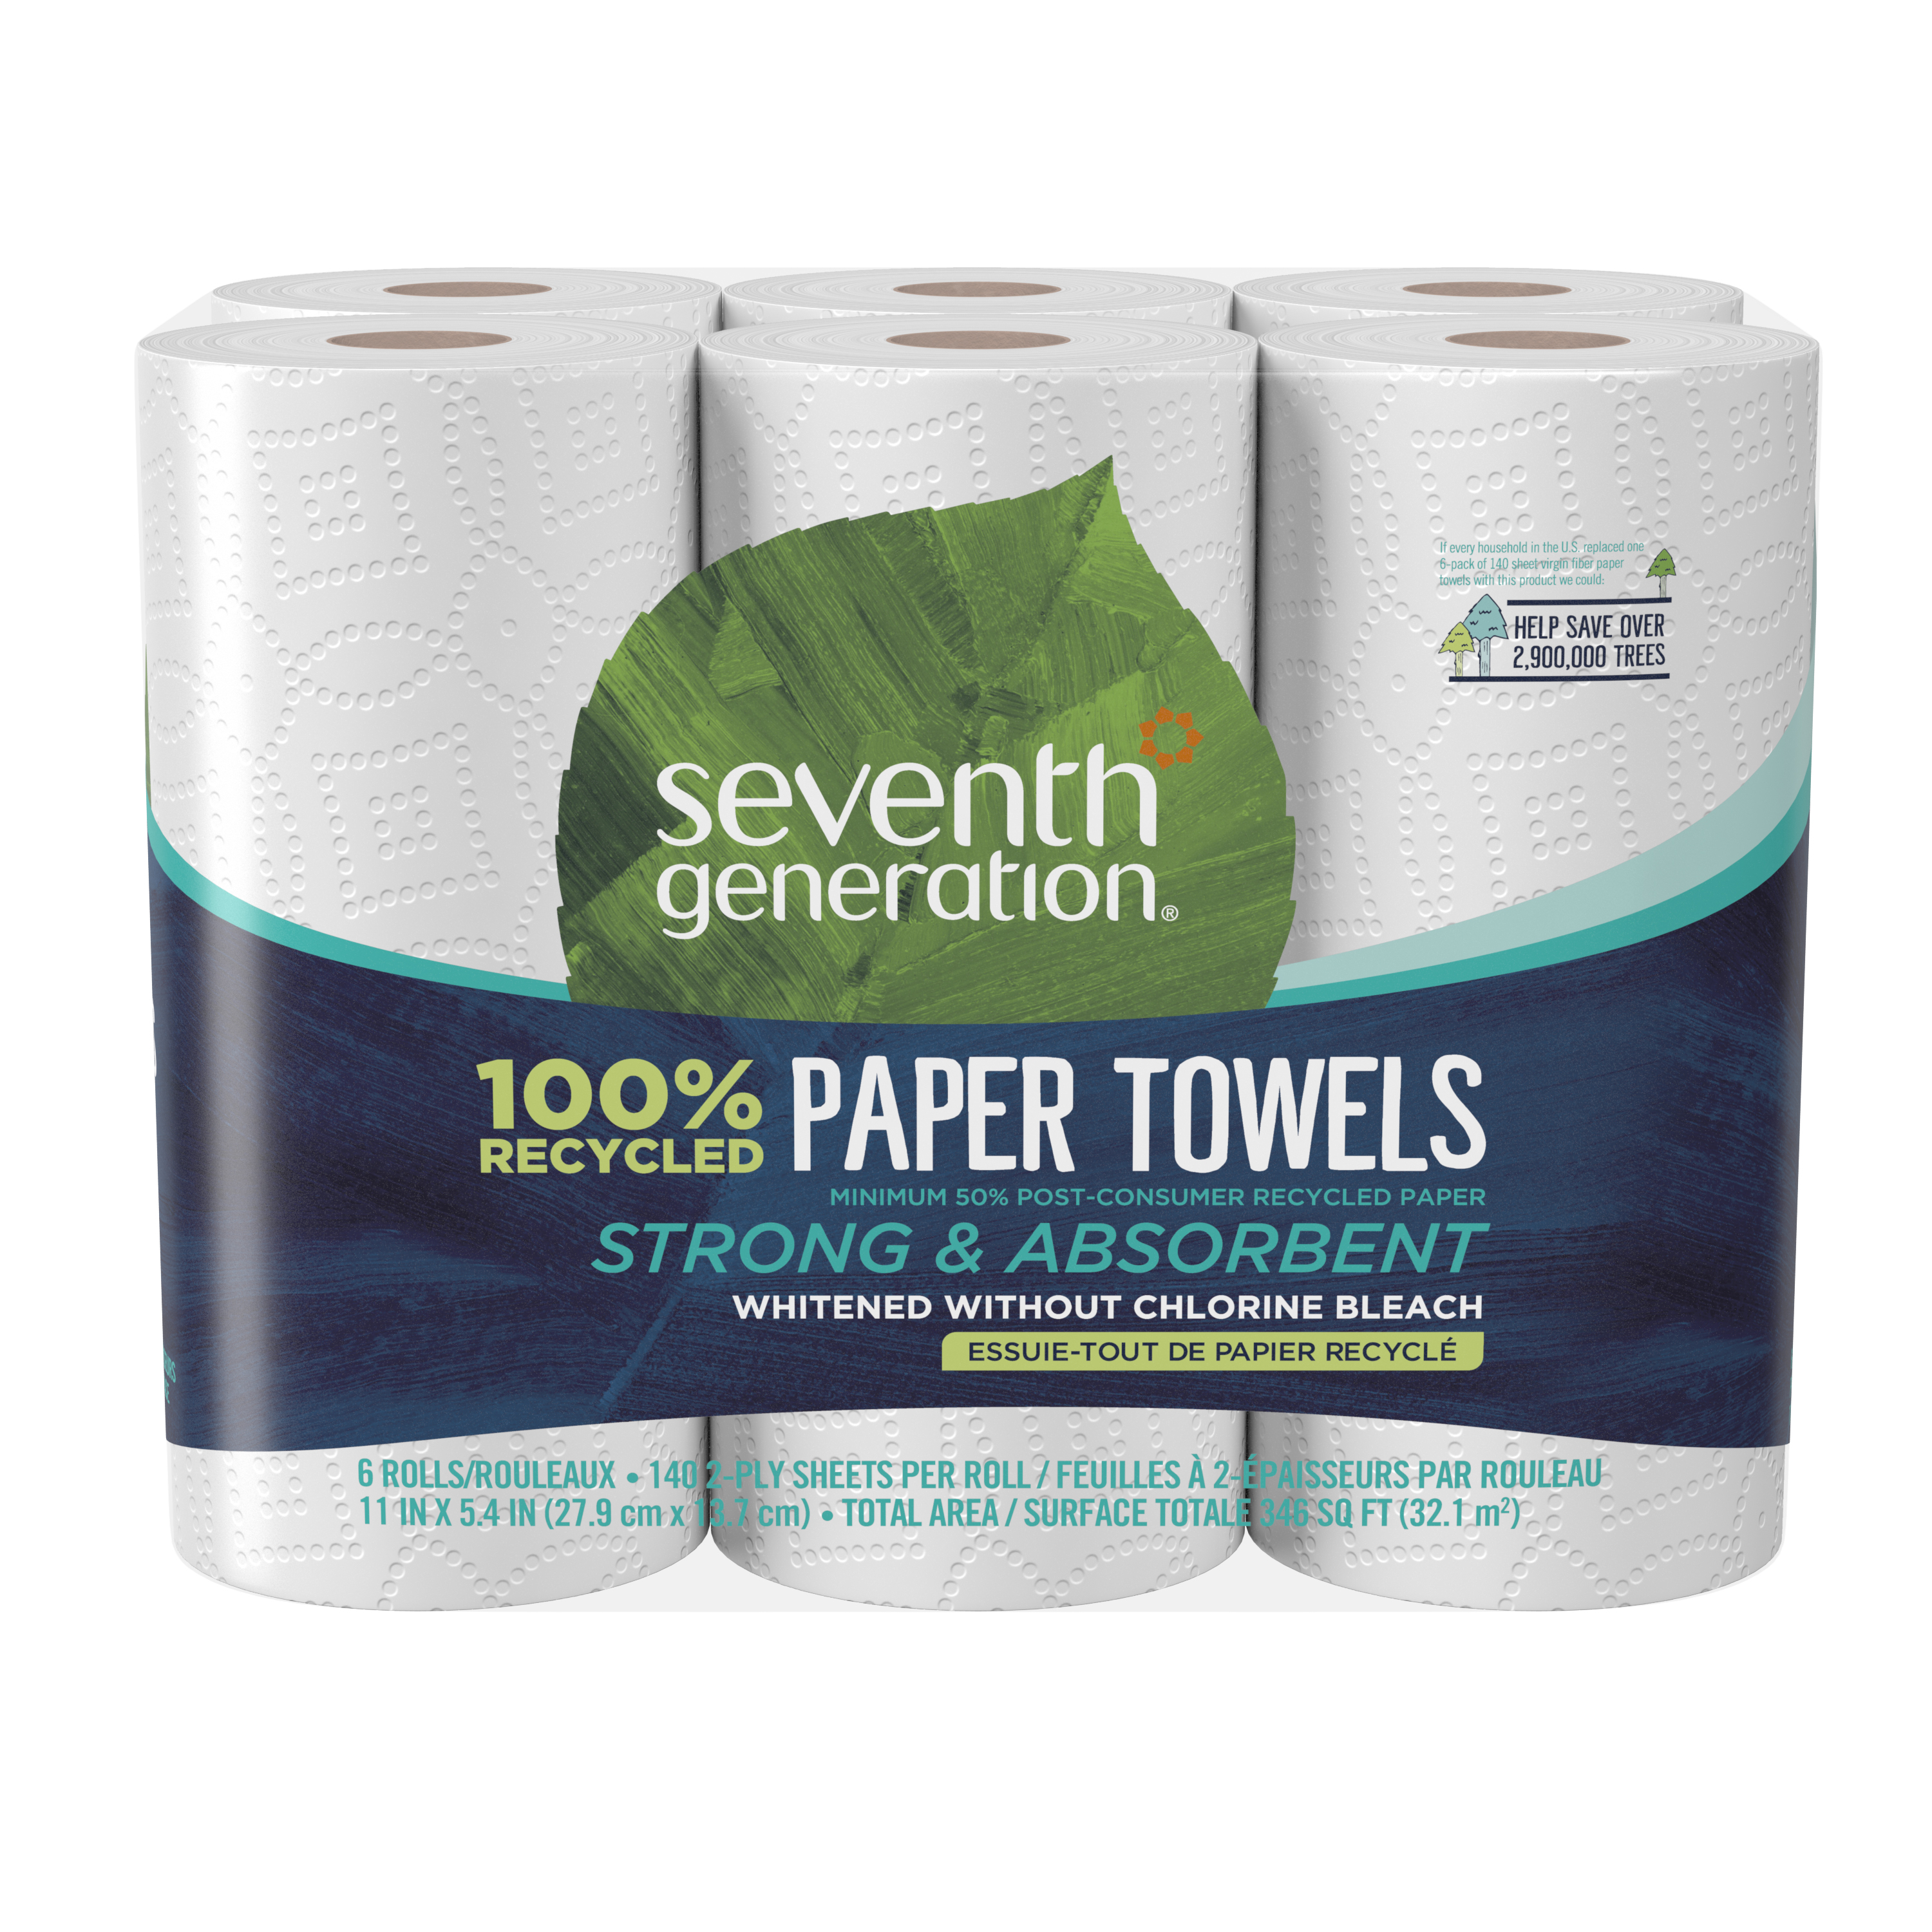 Seventh Generation 100% Recycled Paper Towels, Full Sheet, 6 Rolls